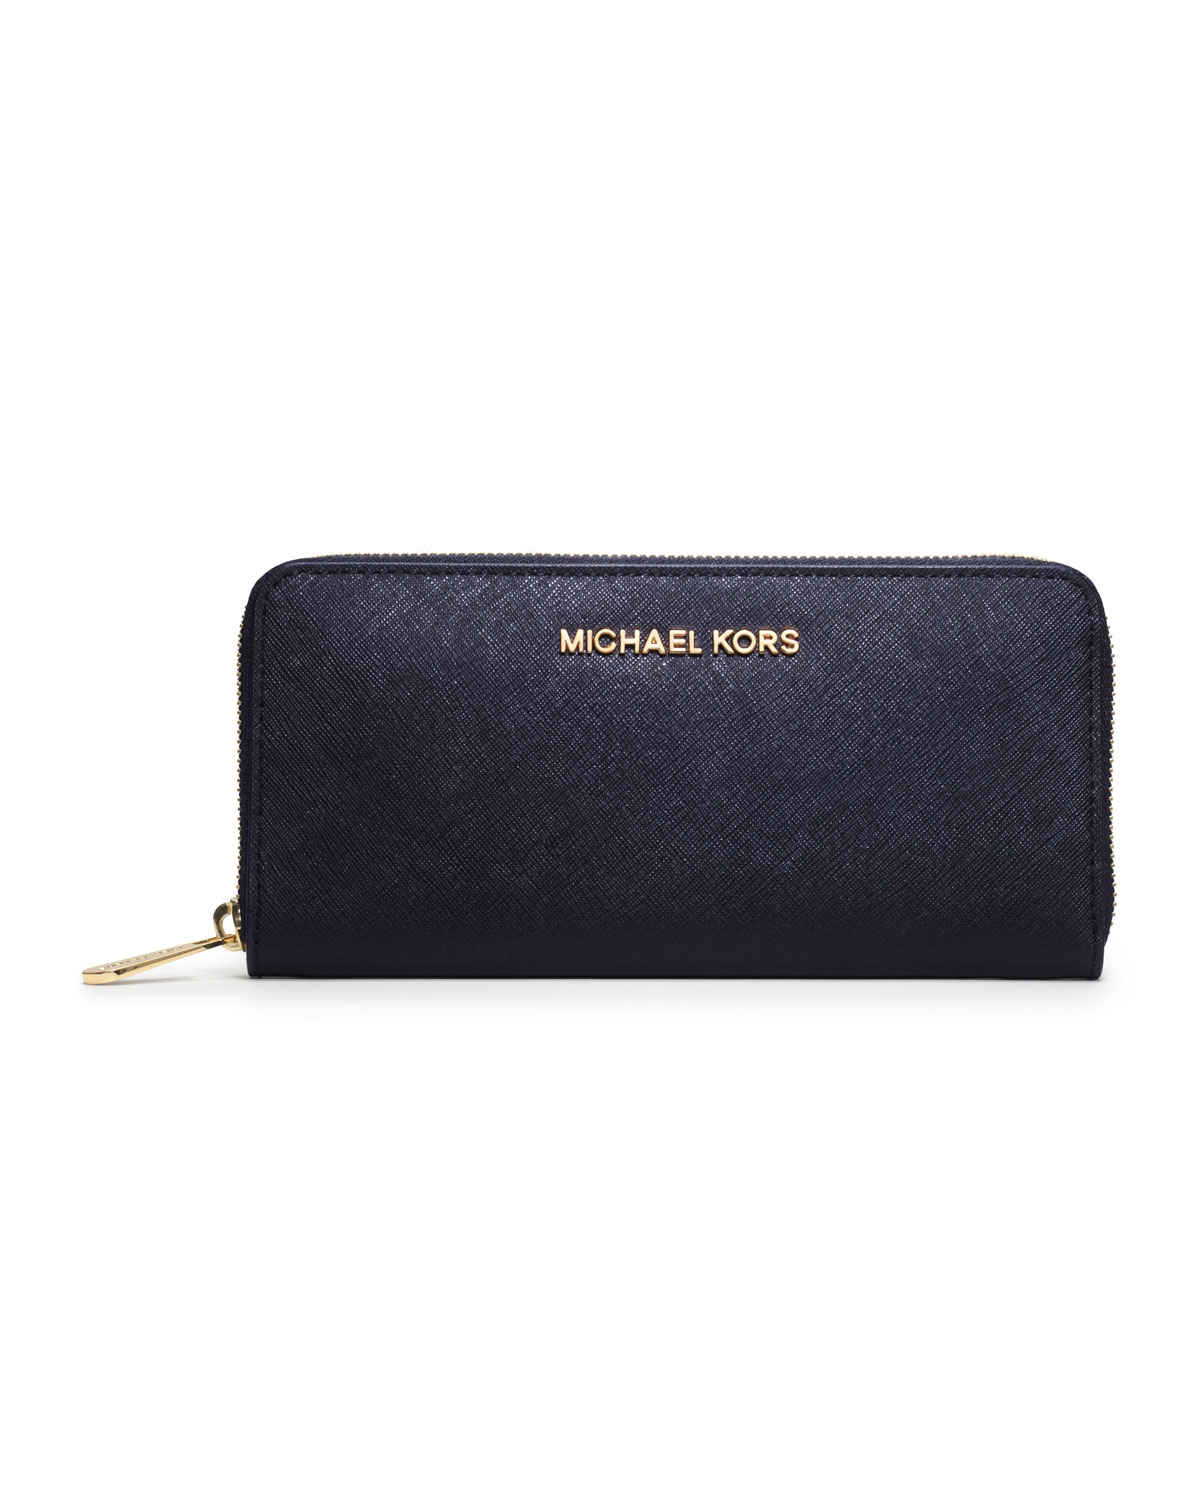 93d0ba2e626b Michael Kors Saffiano Wallet Navy | Stanford Center for Opportunity ...